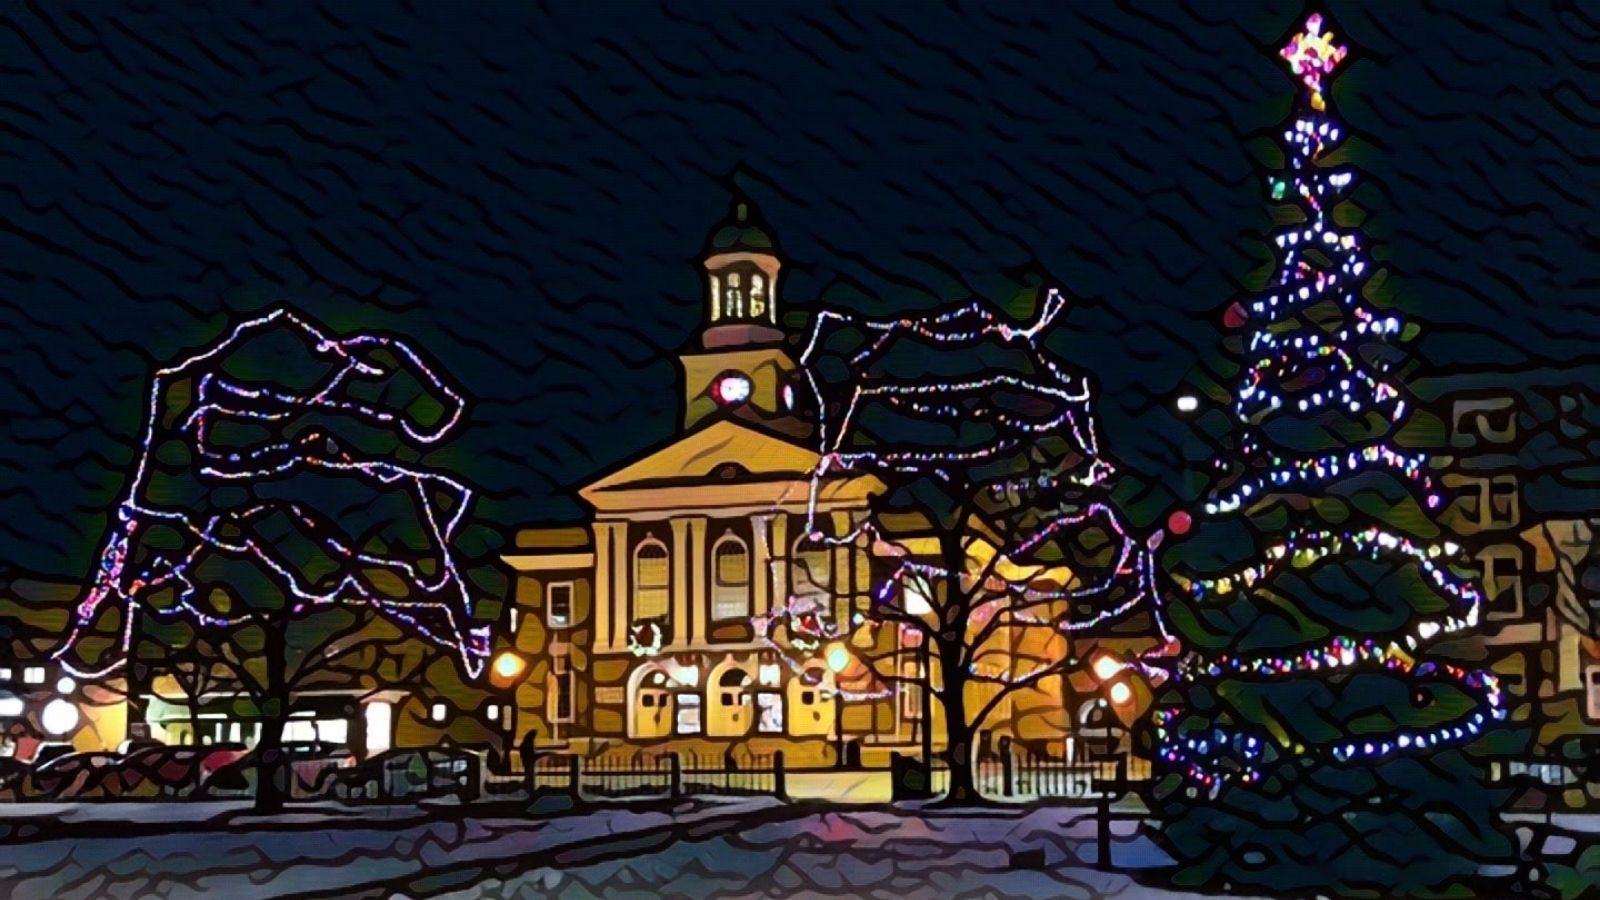 City Hall at night with holiday lights Opens in new window